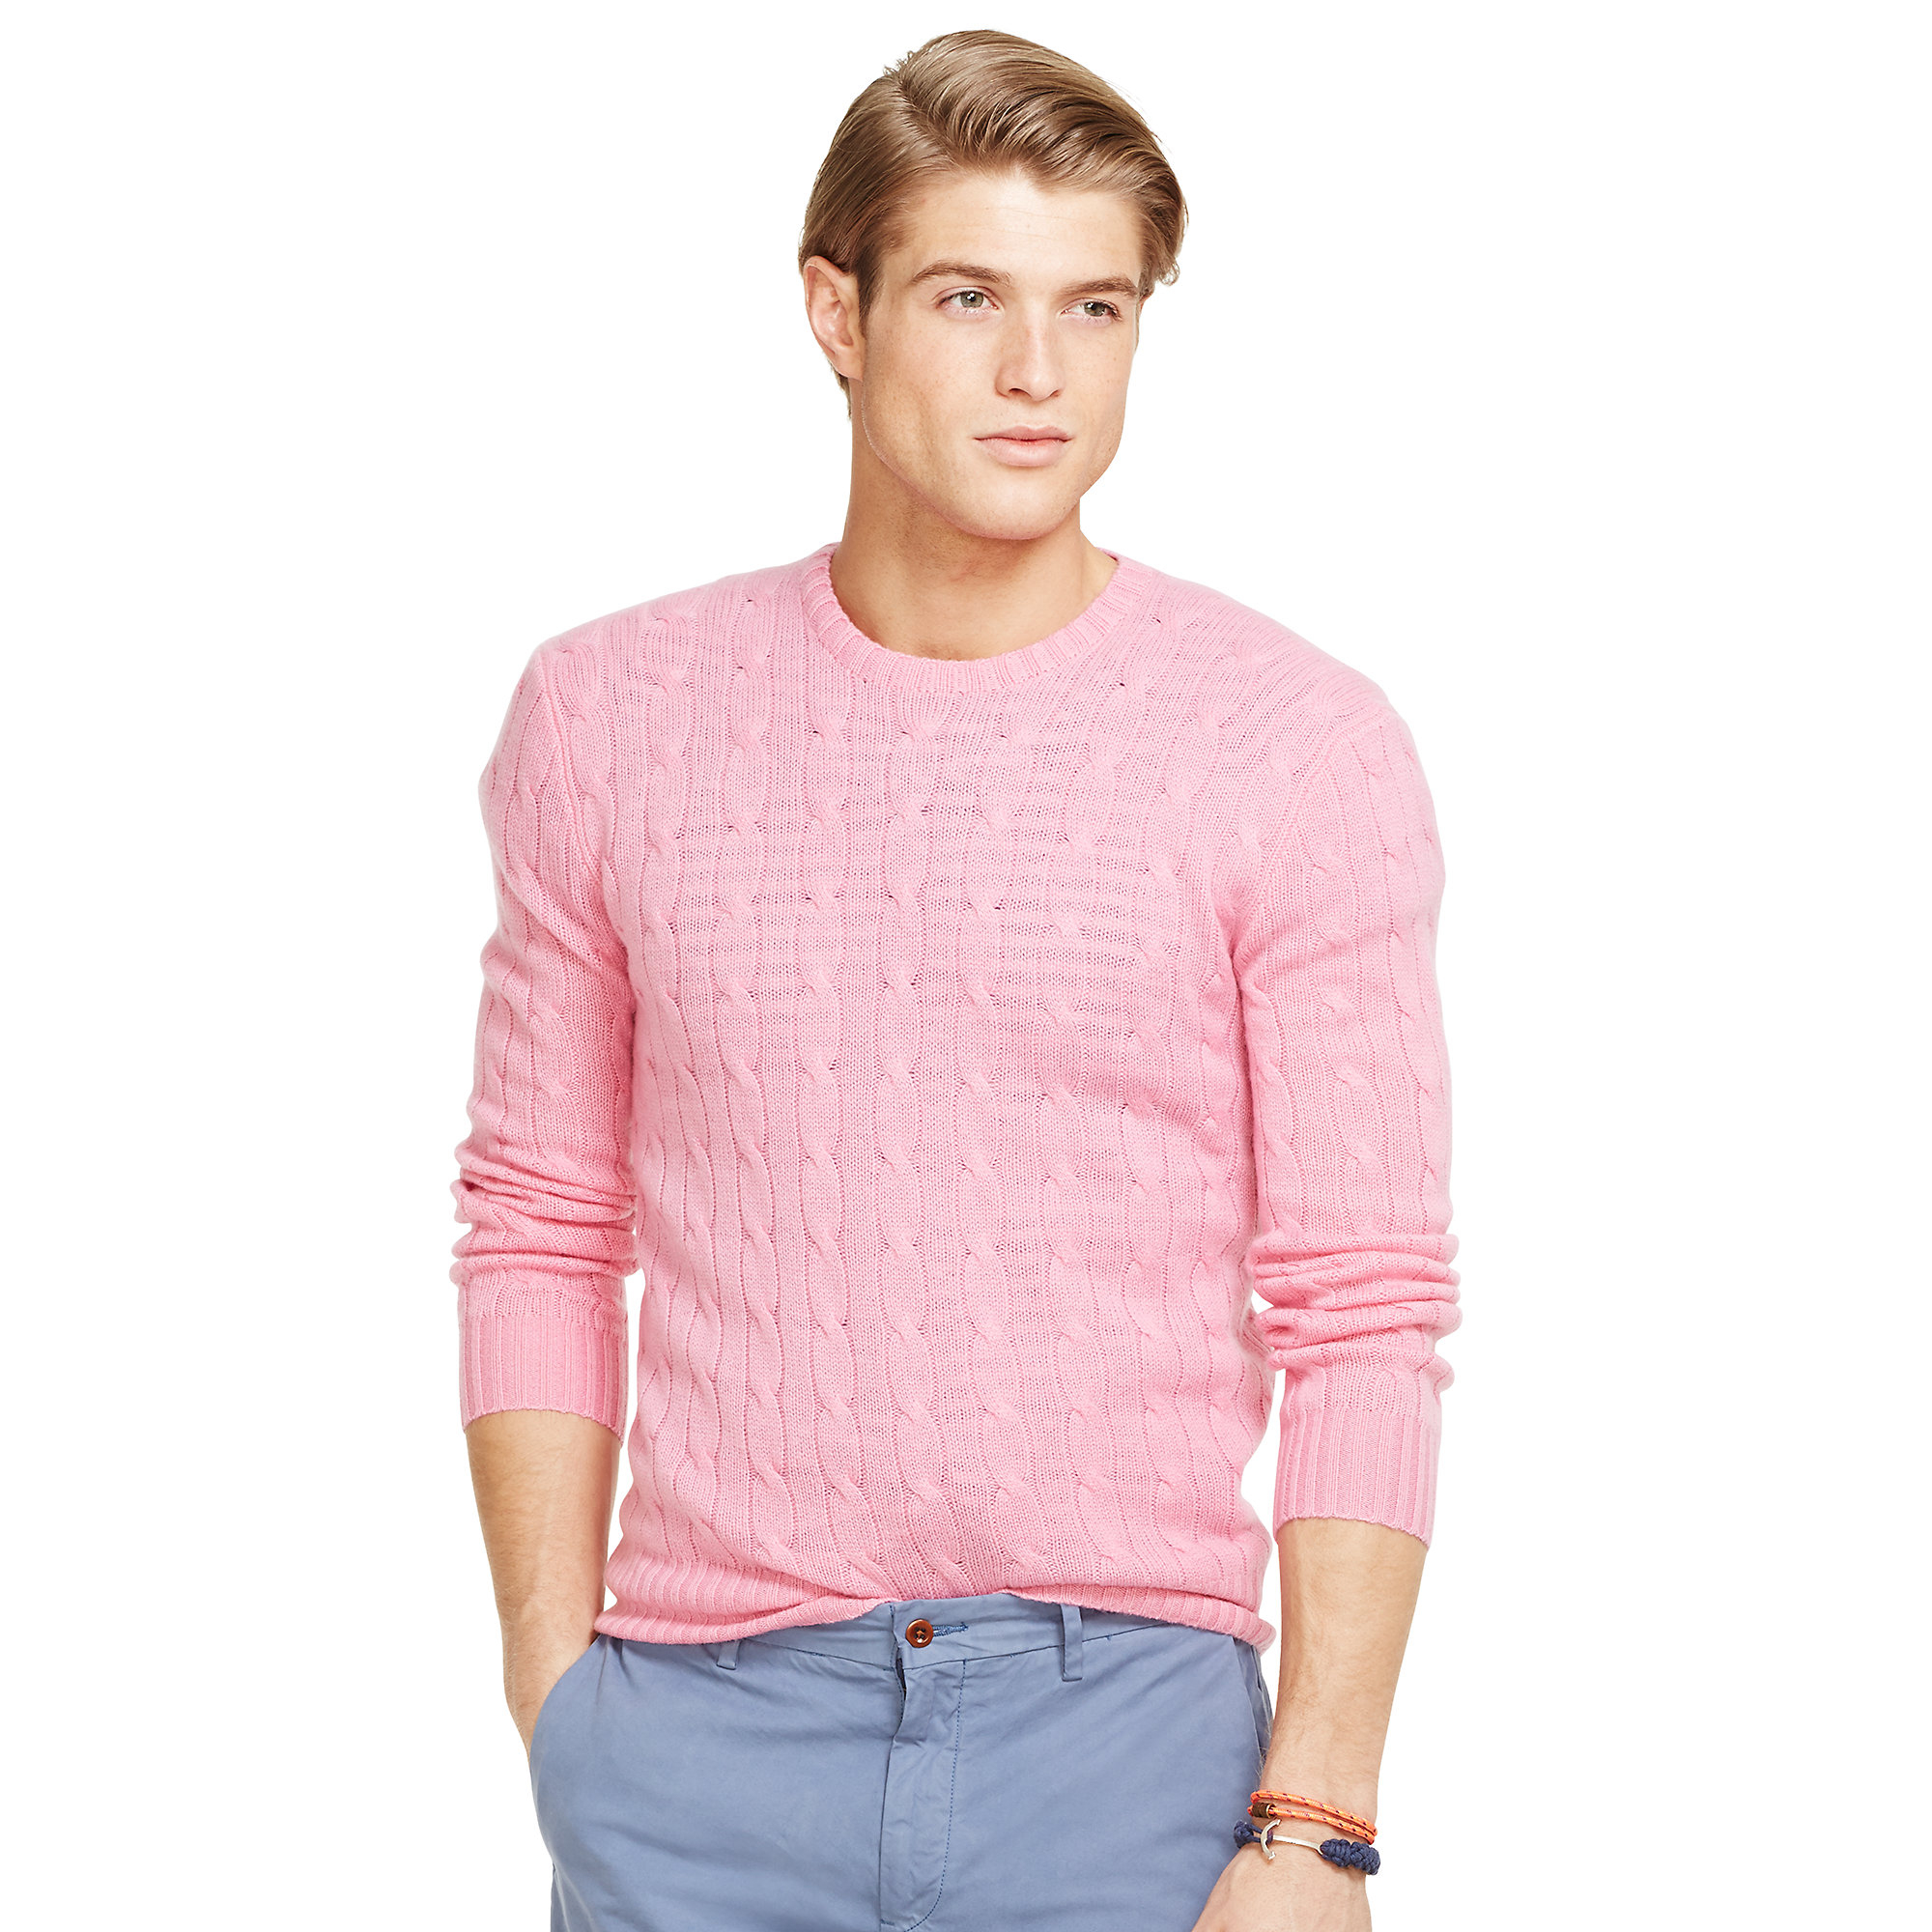 Lyst Polo Ralph Lauren Cable Knit Cashmere Sweater In Pink For Men